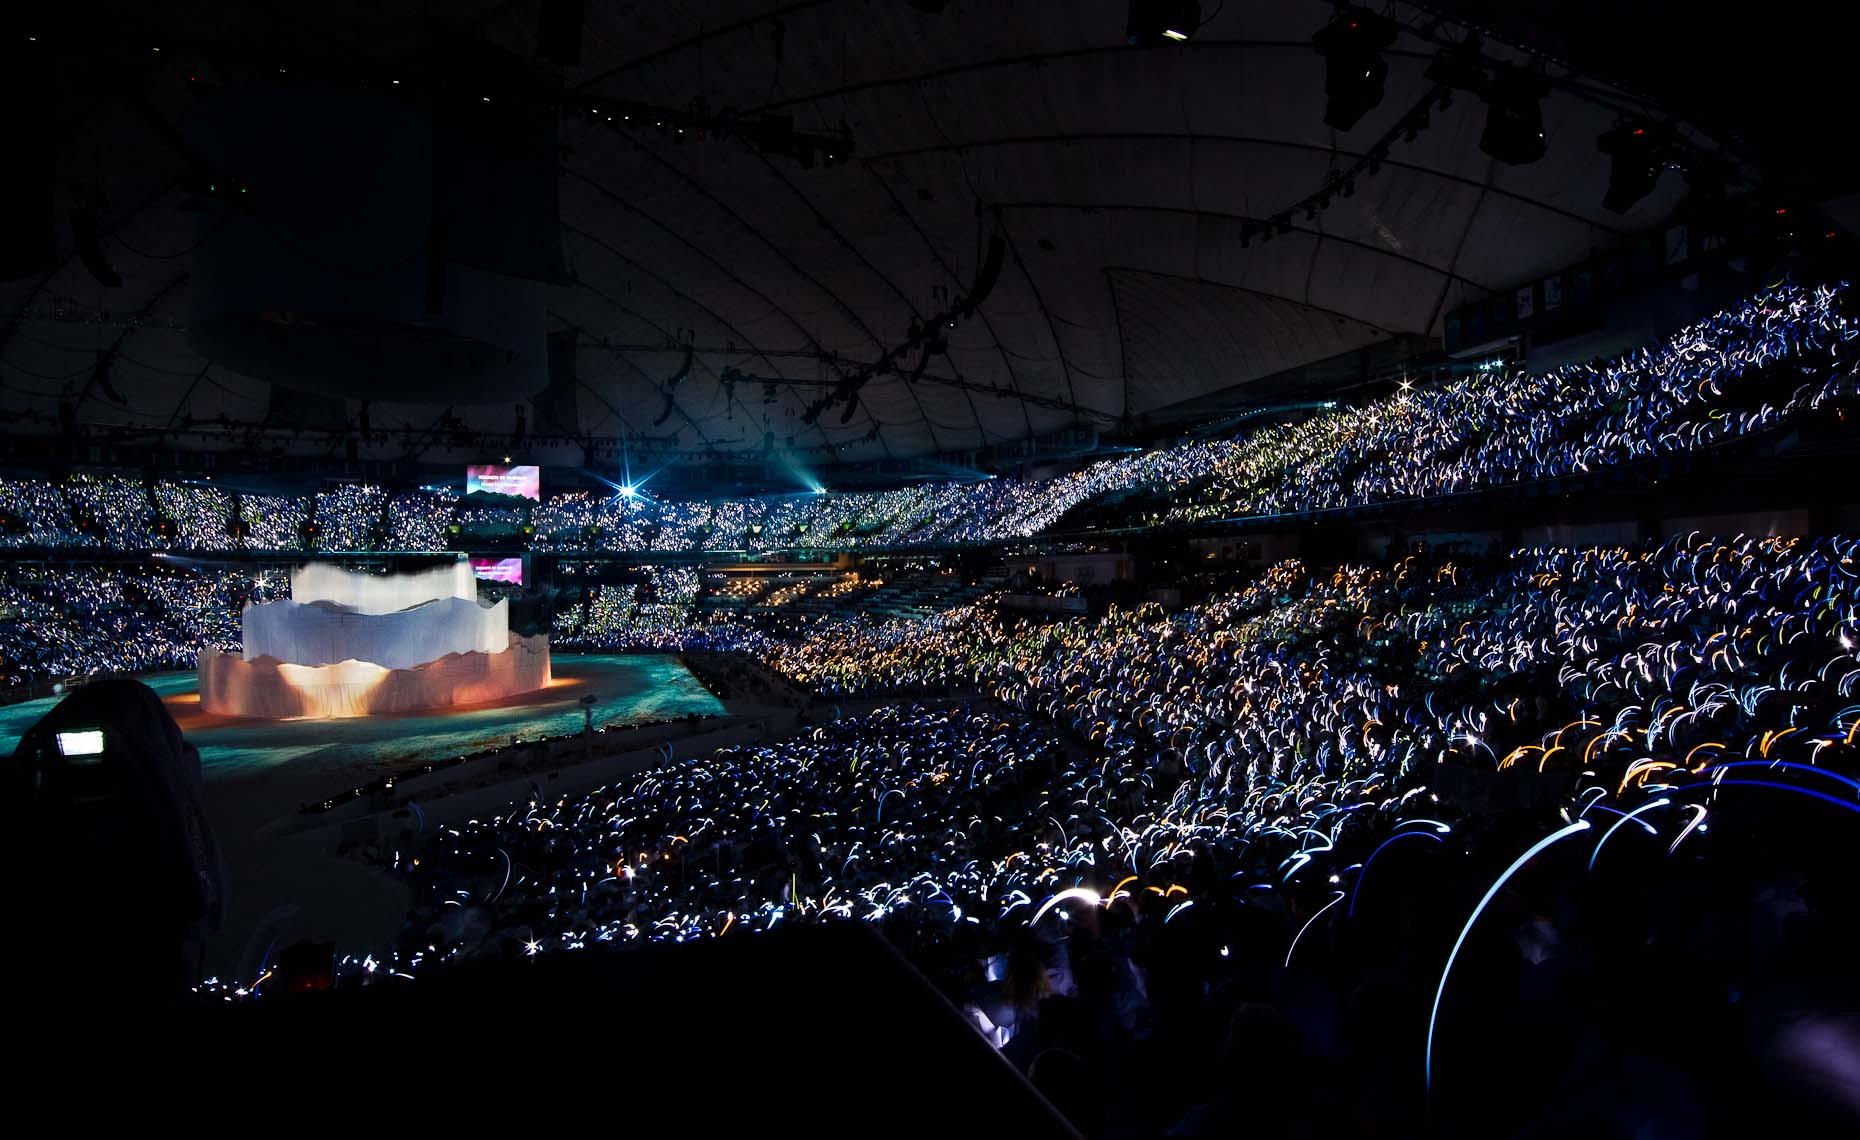 2010 winter olympics closing ceremony in vancouver